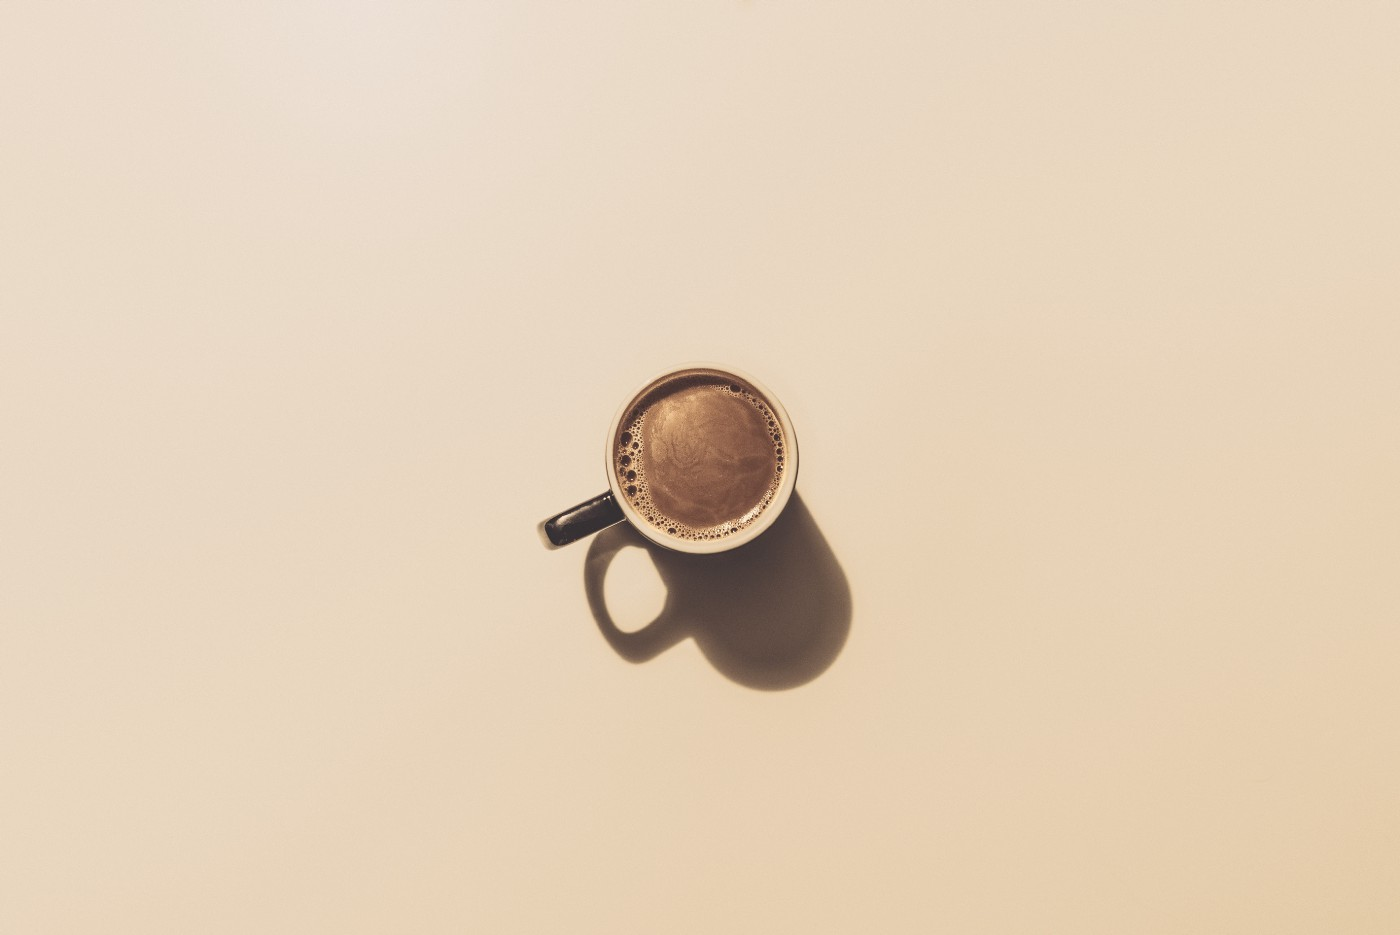 Cup of coffee on an empty table